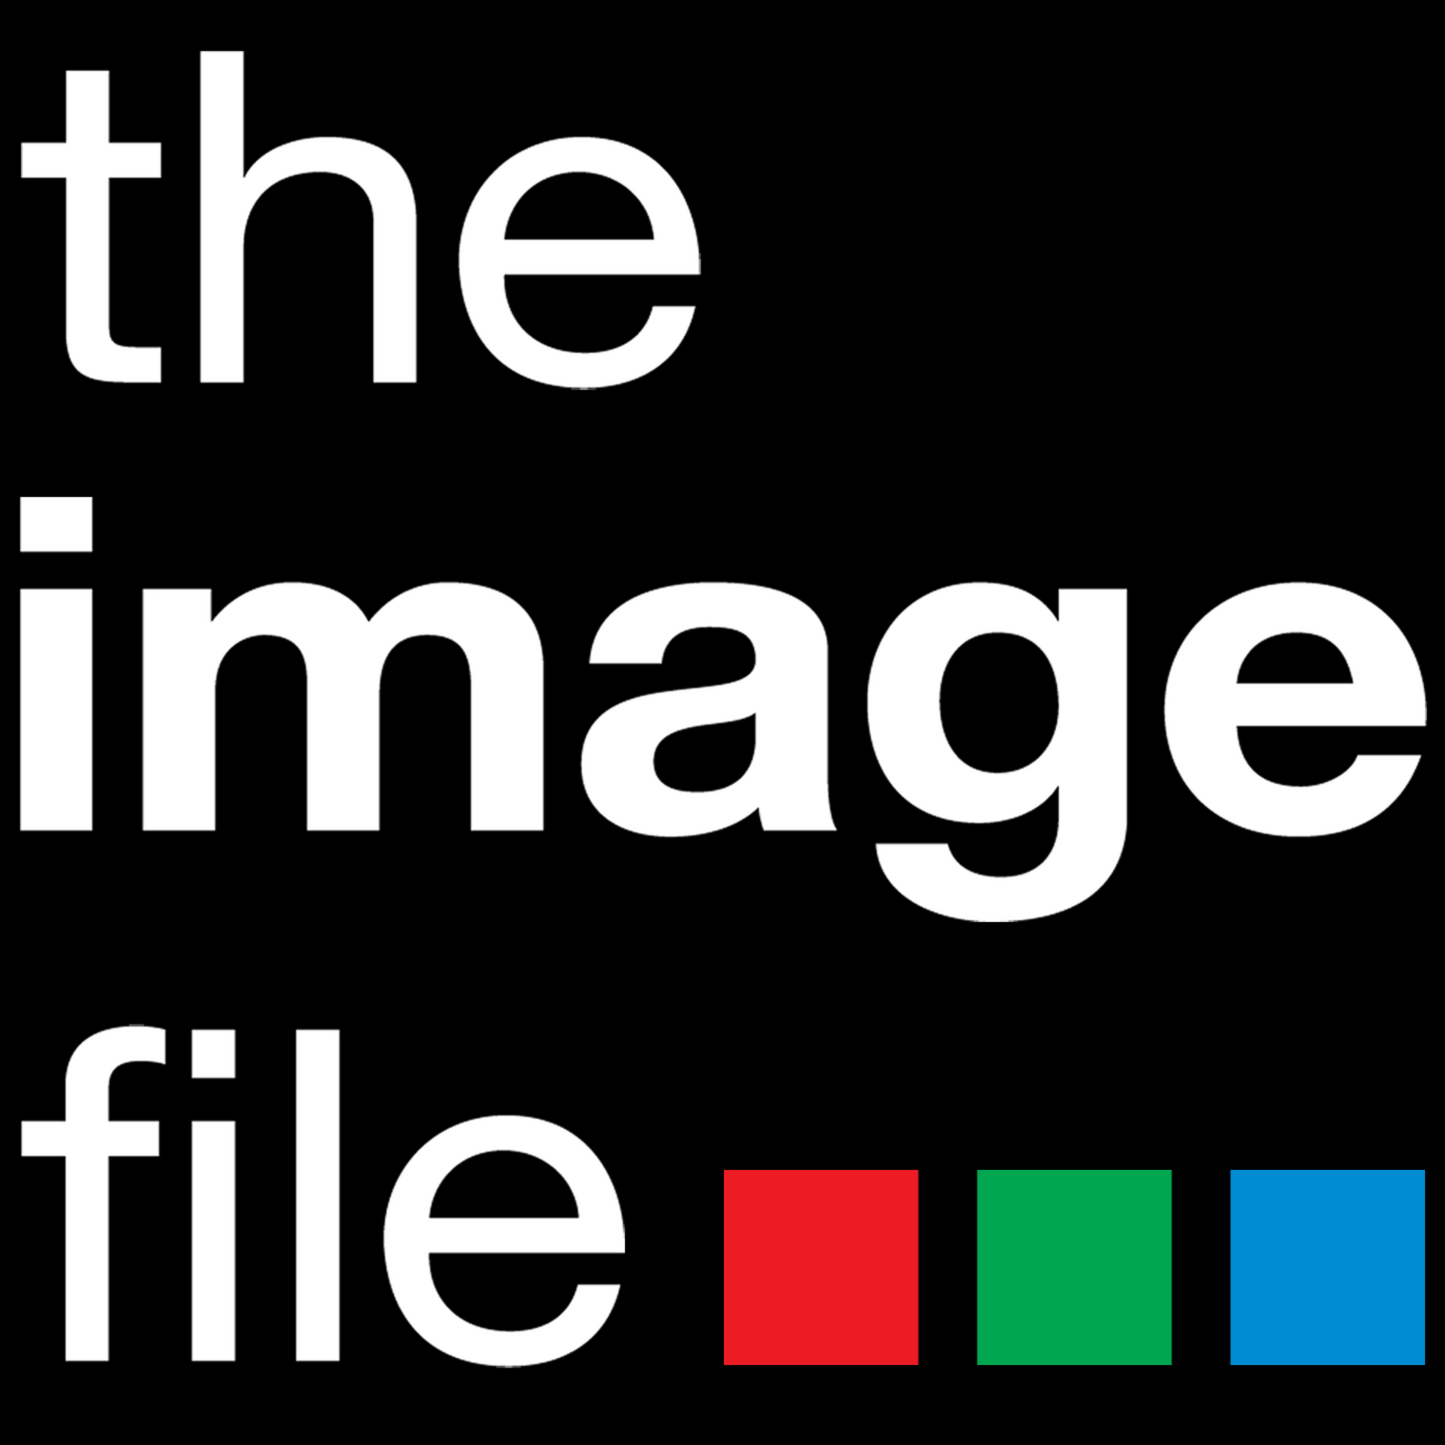 theimagefile